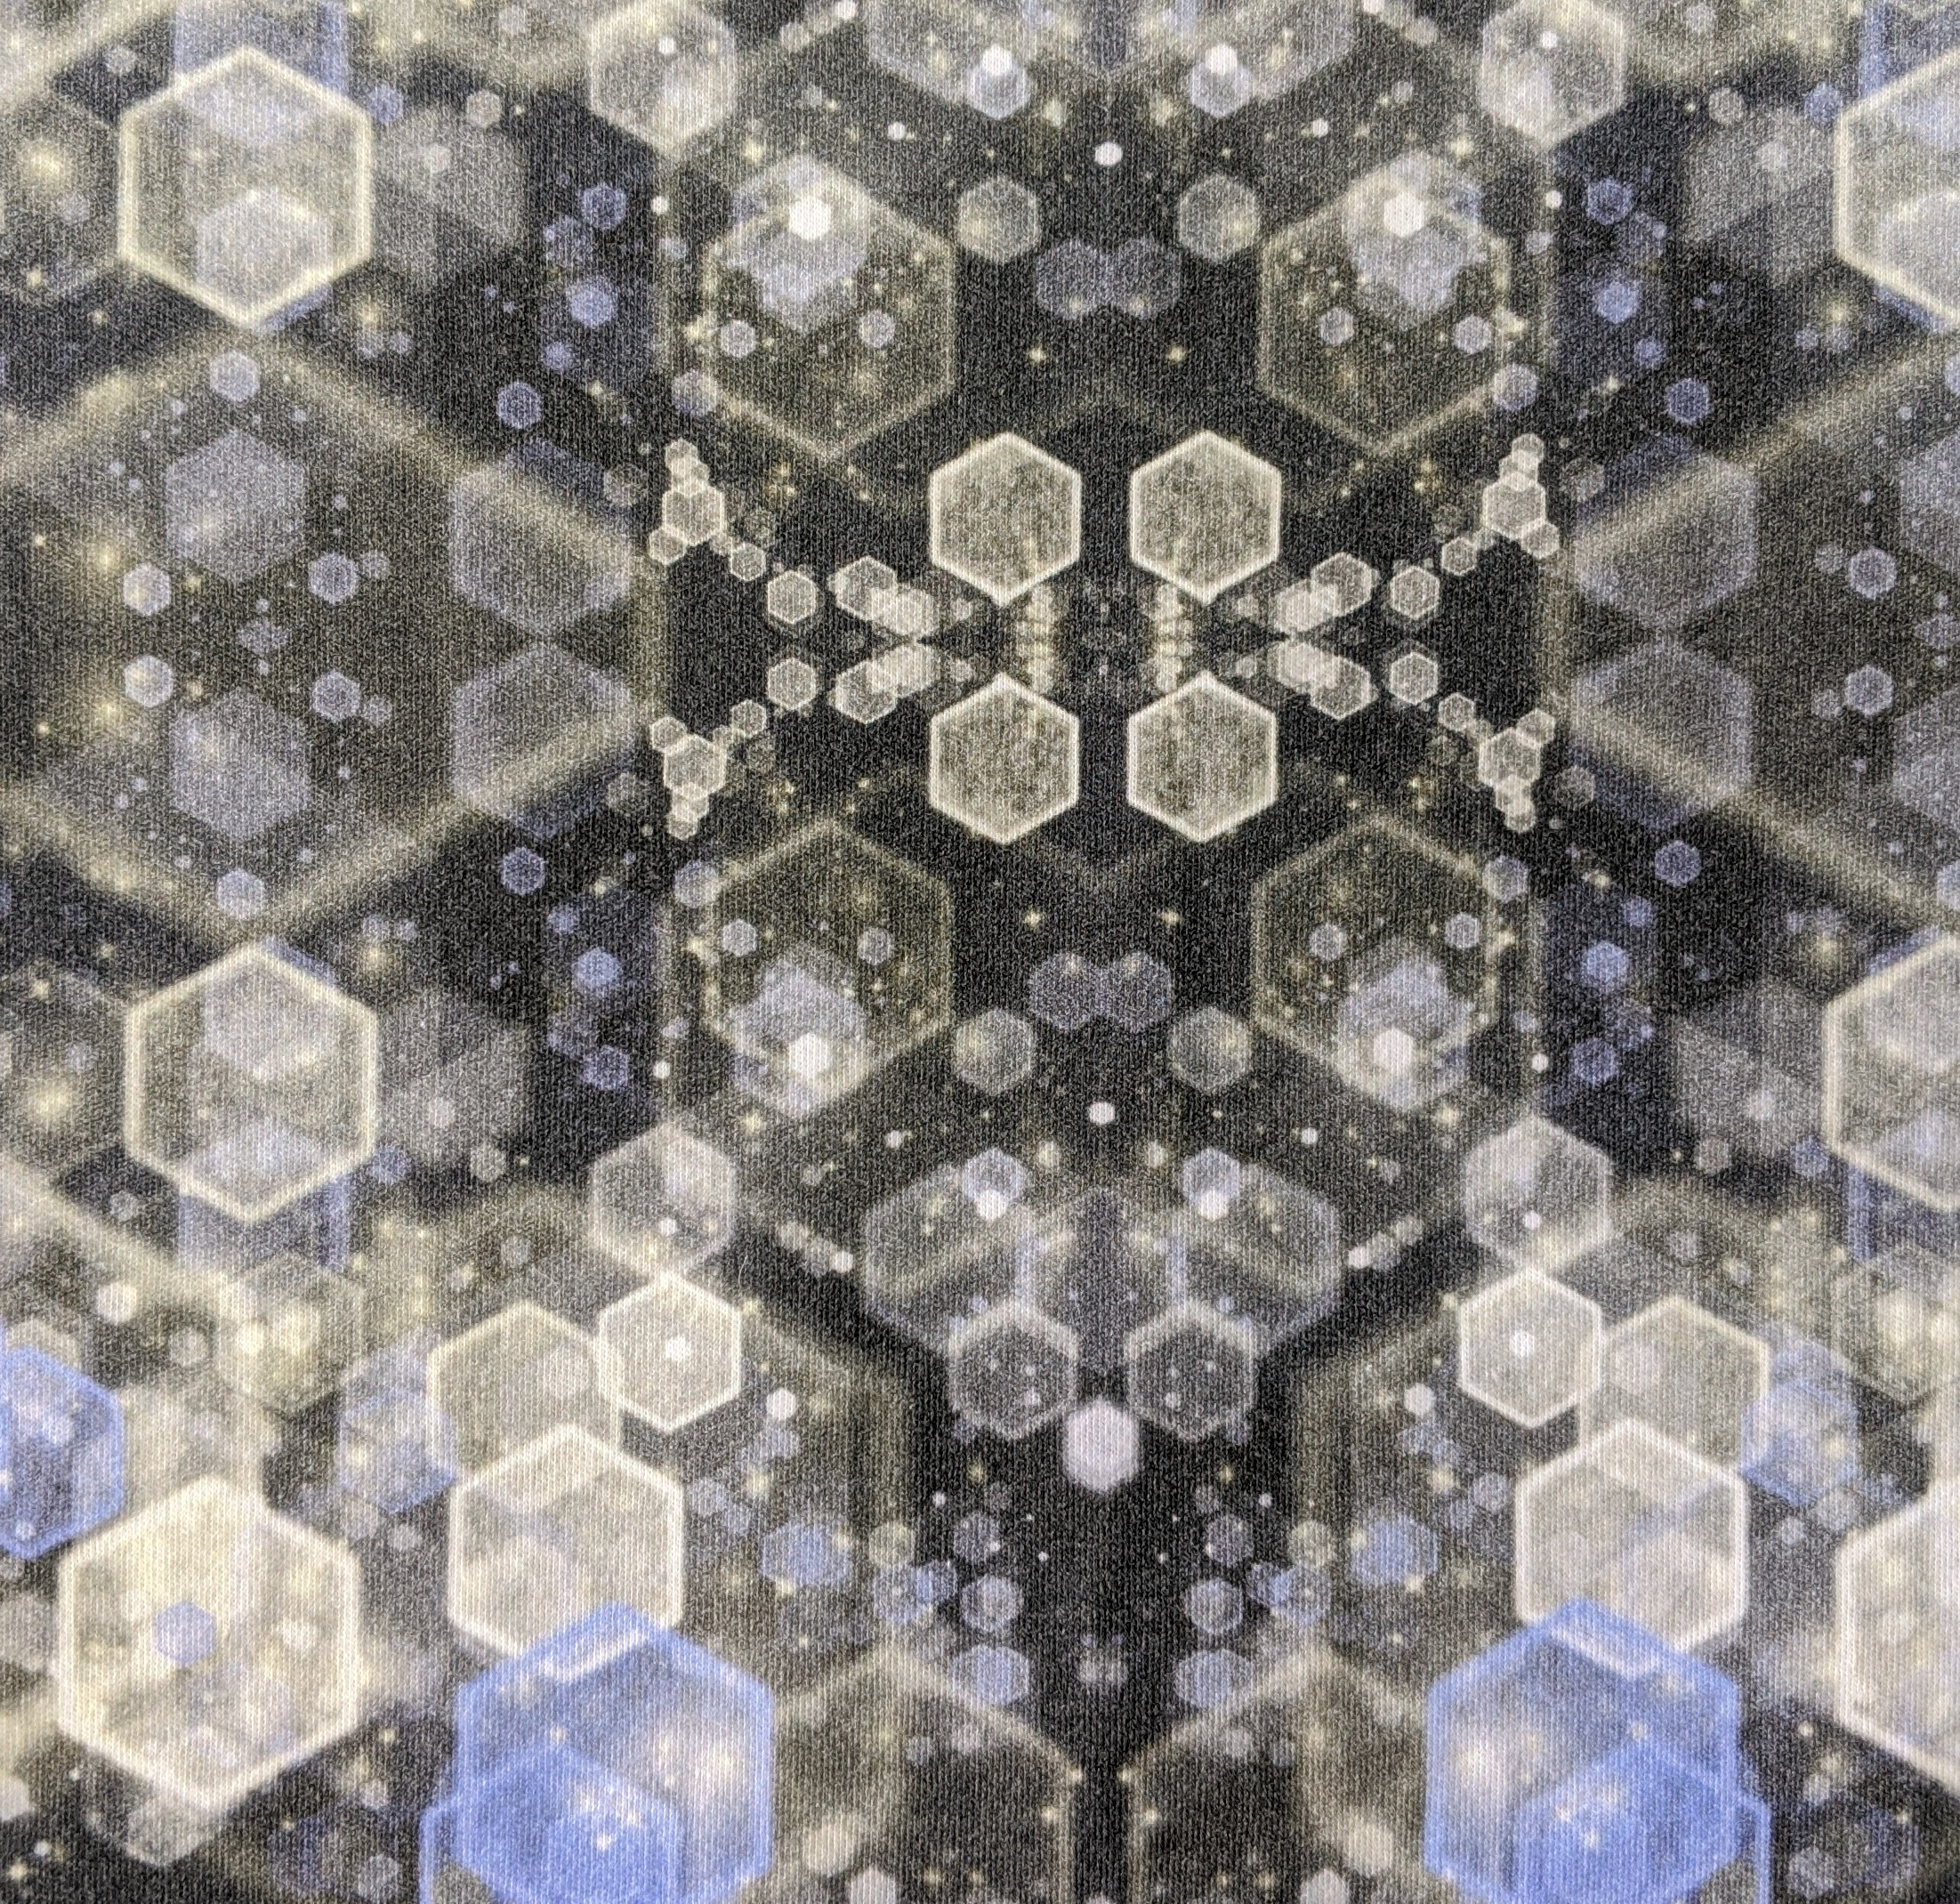 Hexagonal Ice Mirror